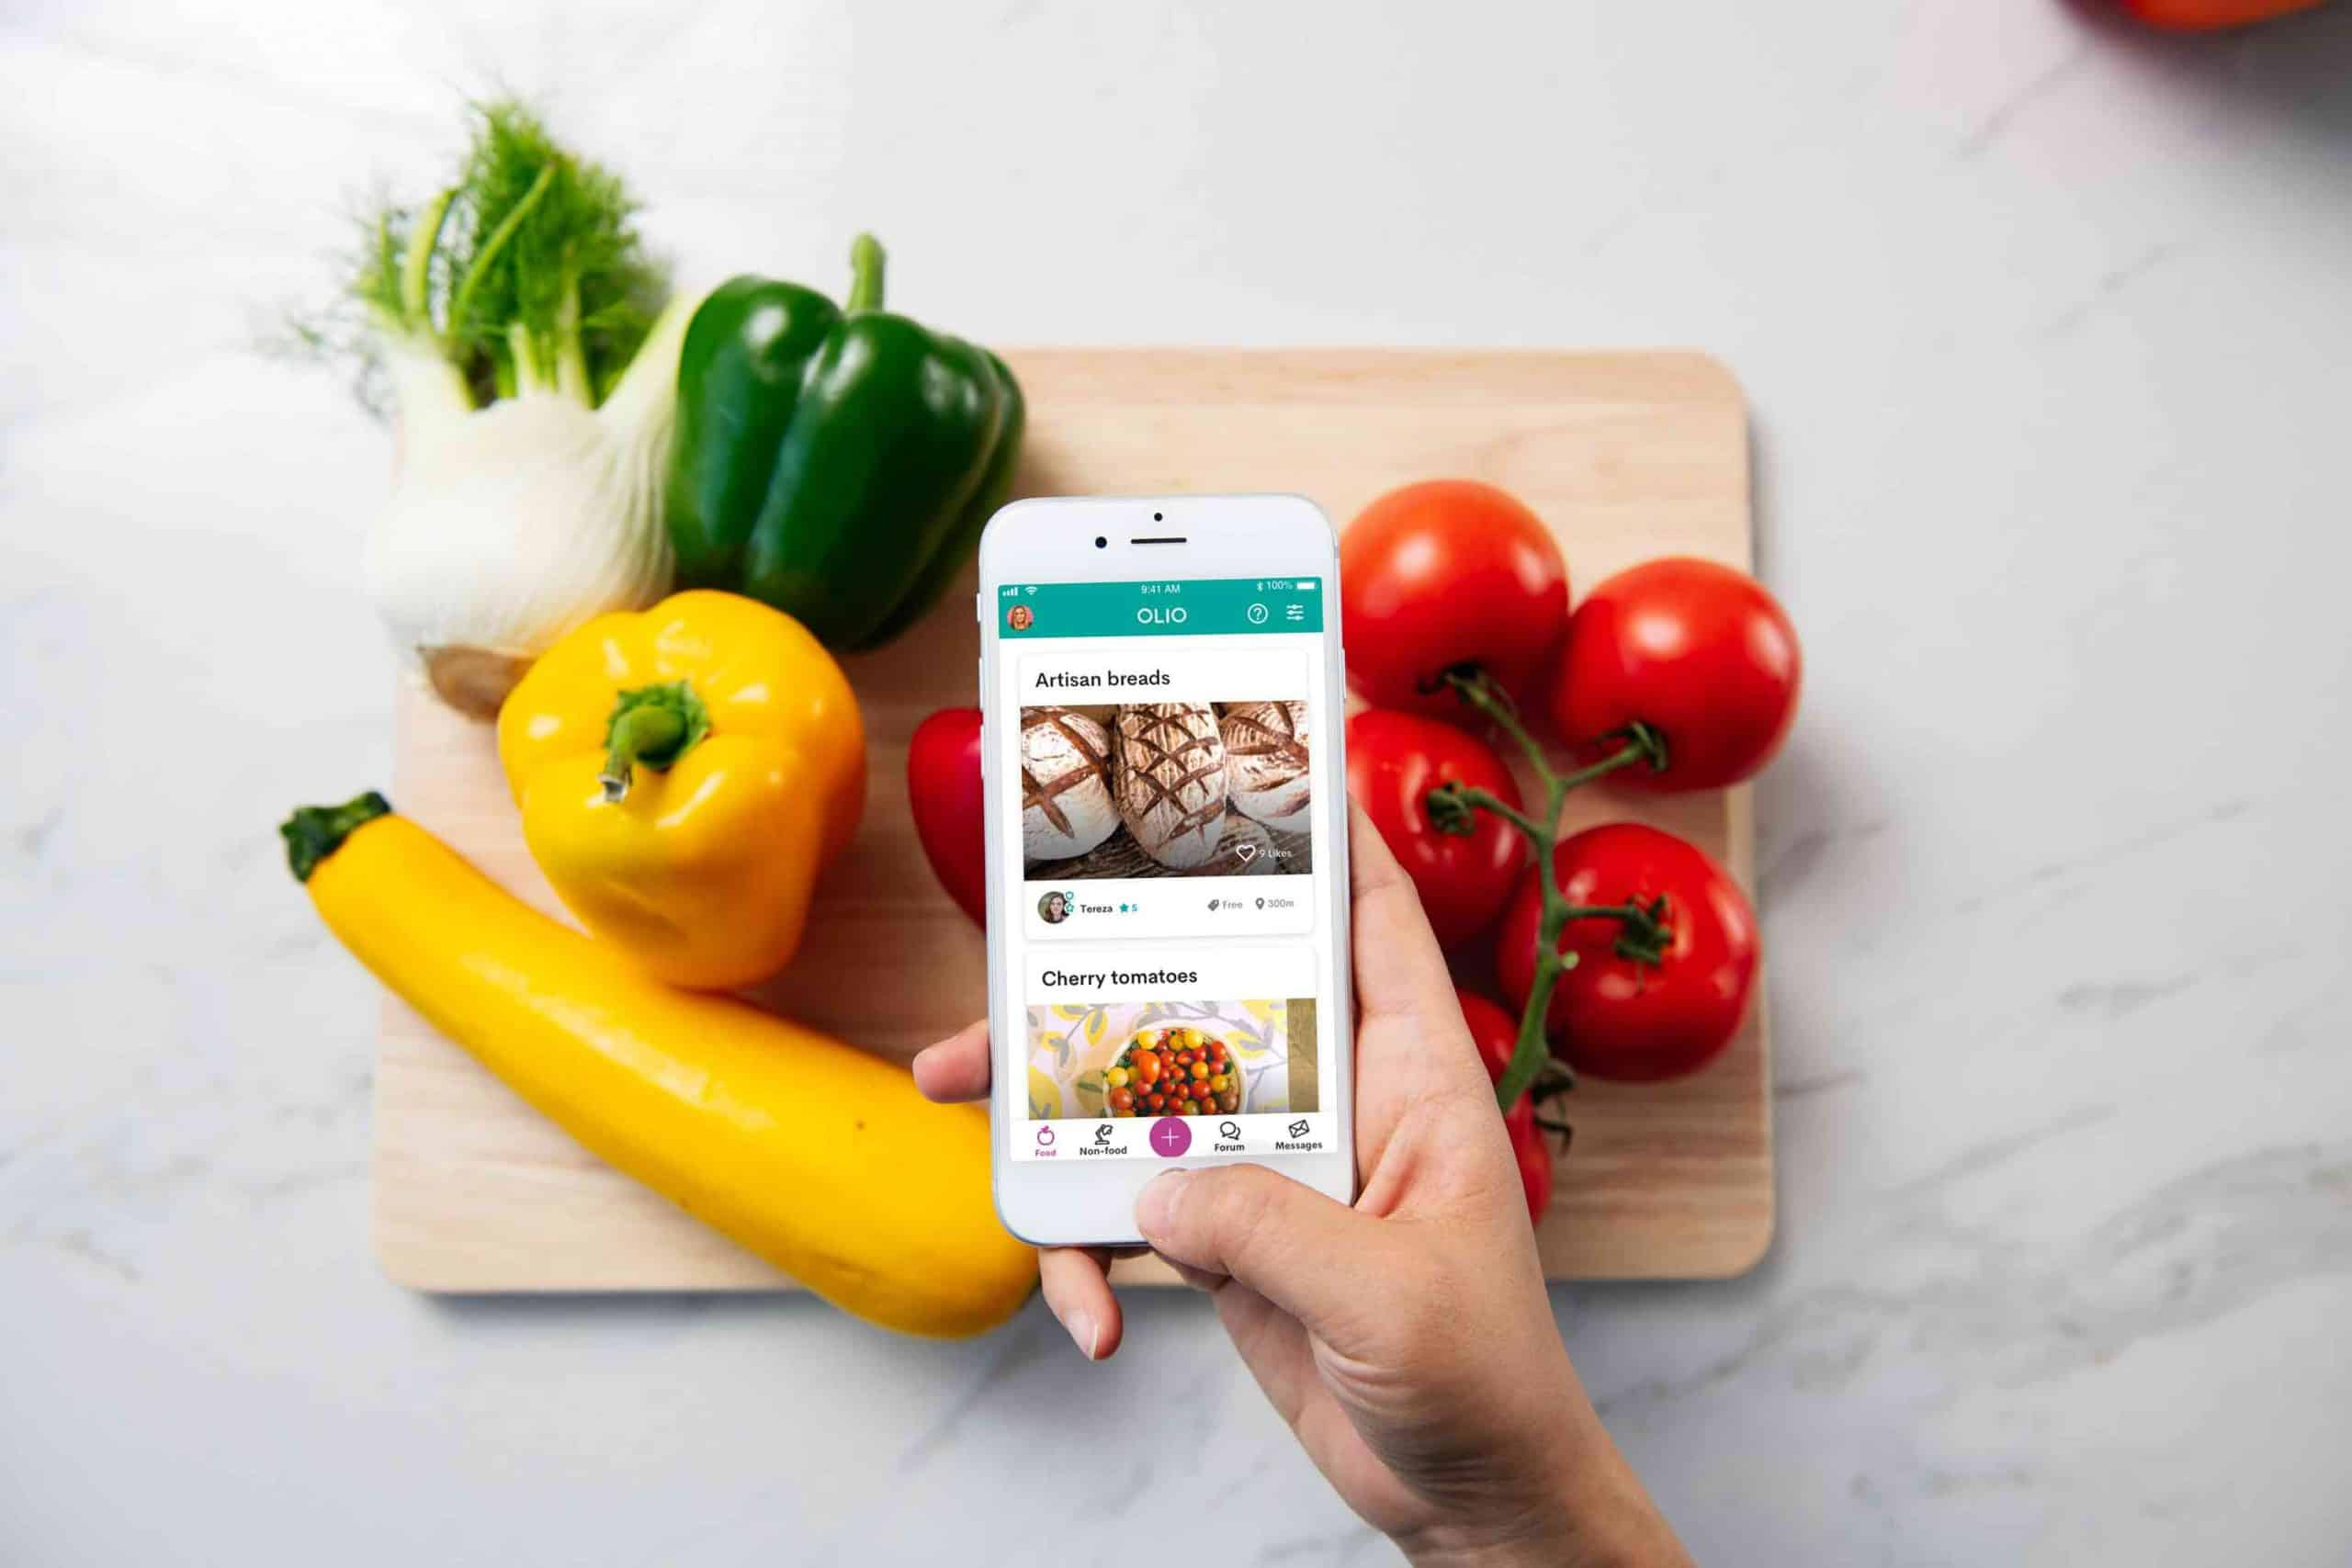 OLIO is an app that enables users to reduce their food waste by donating it to local food banks. We are the first event management company to apply this to the events industry.